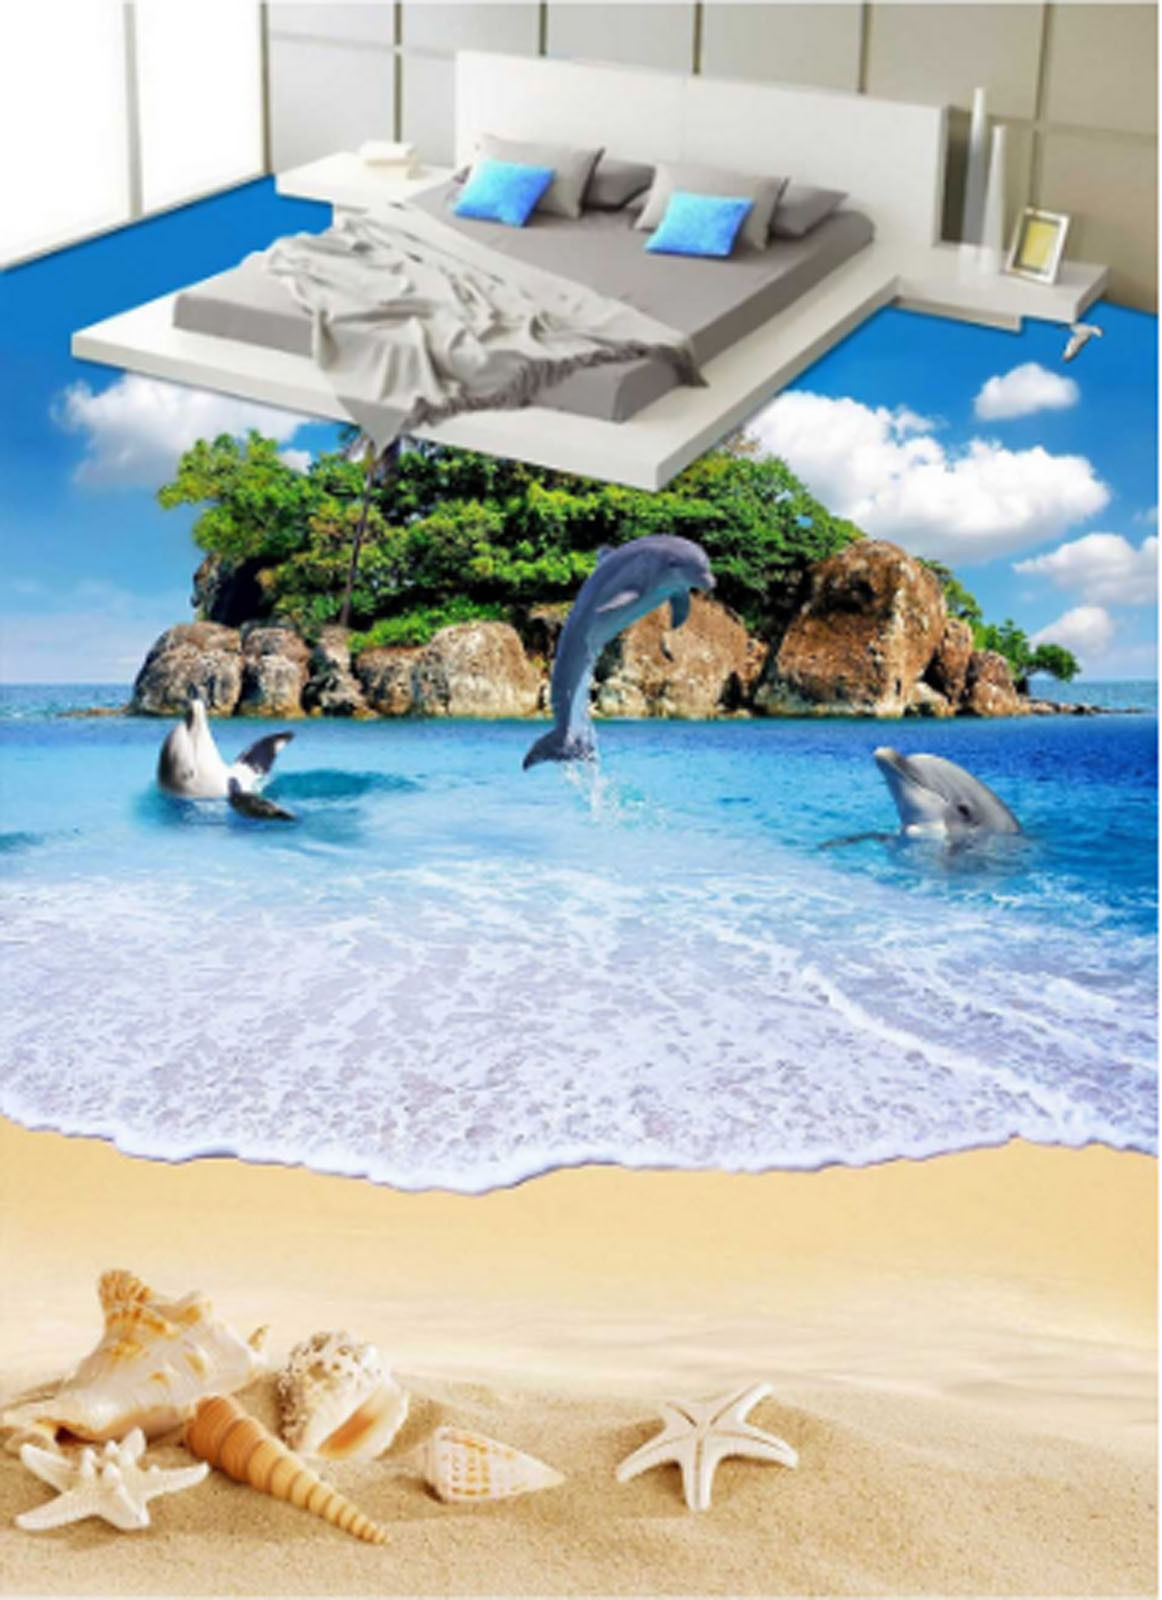 3D Island Beach 4376 Floor WallPaper Murals Wallpaper Mural Print AJ AU Lemon